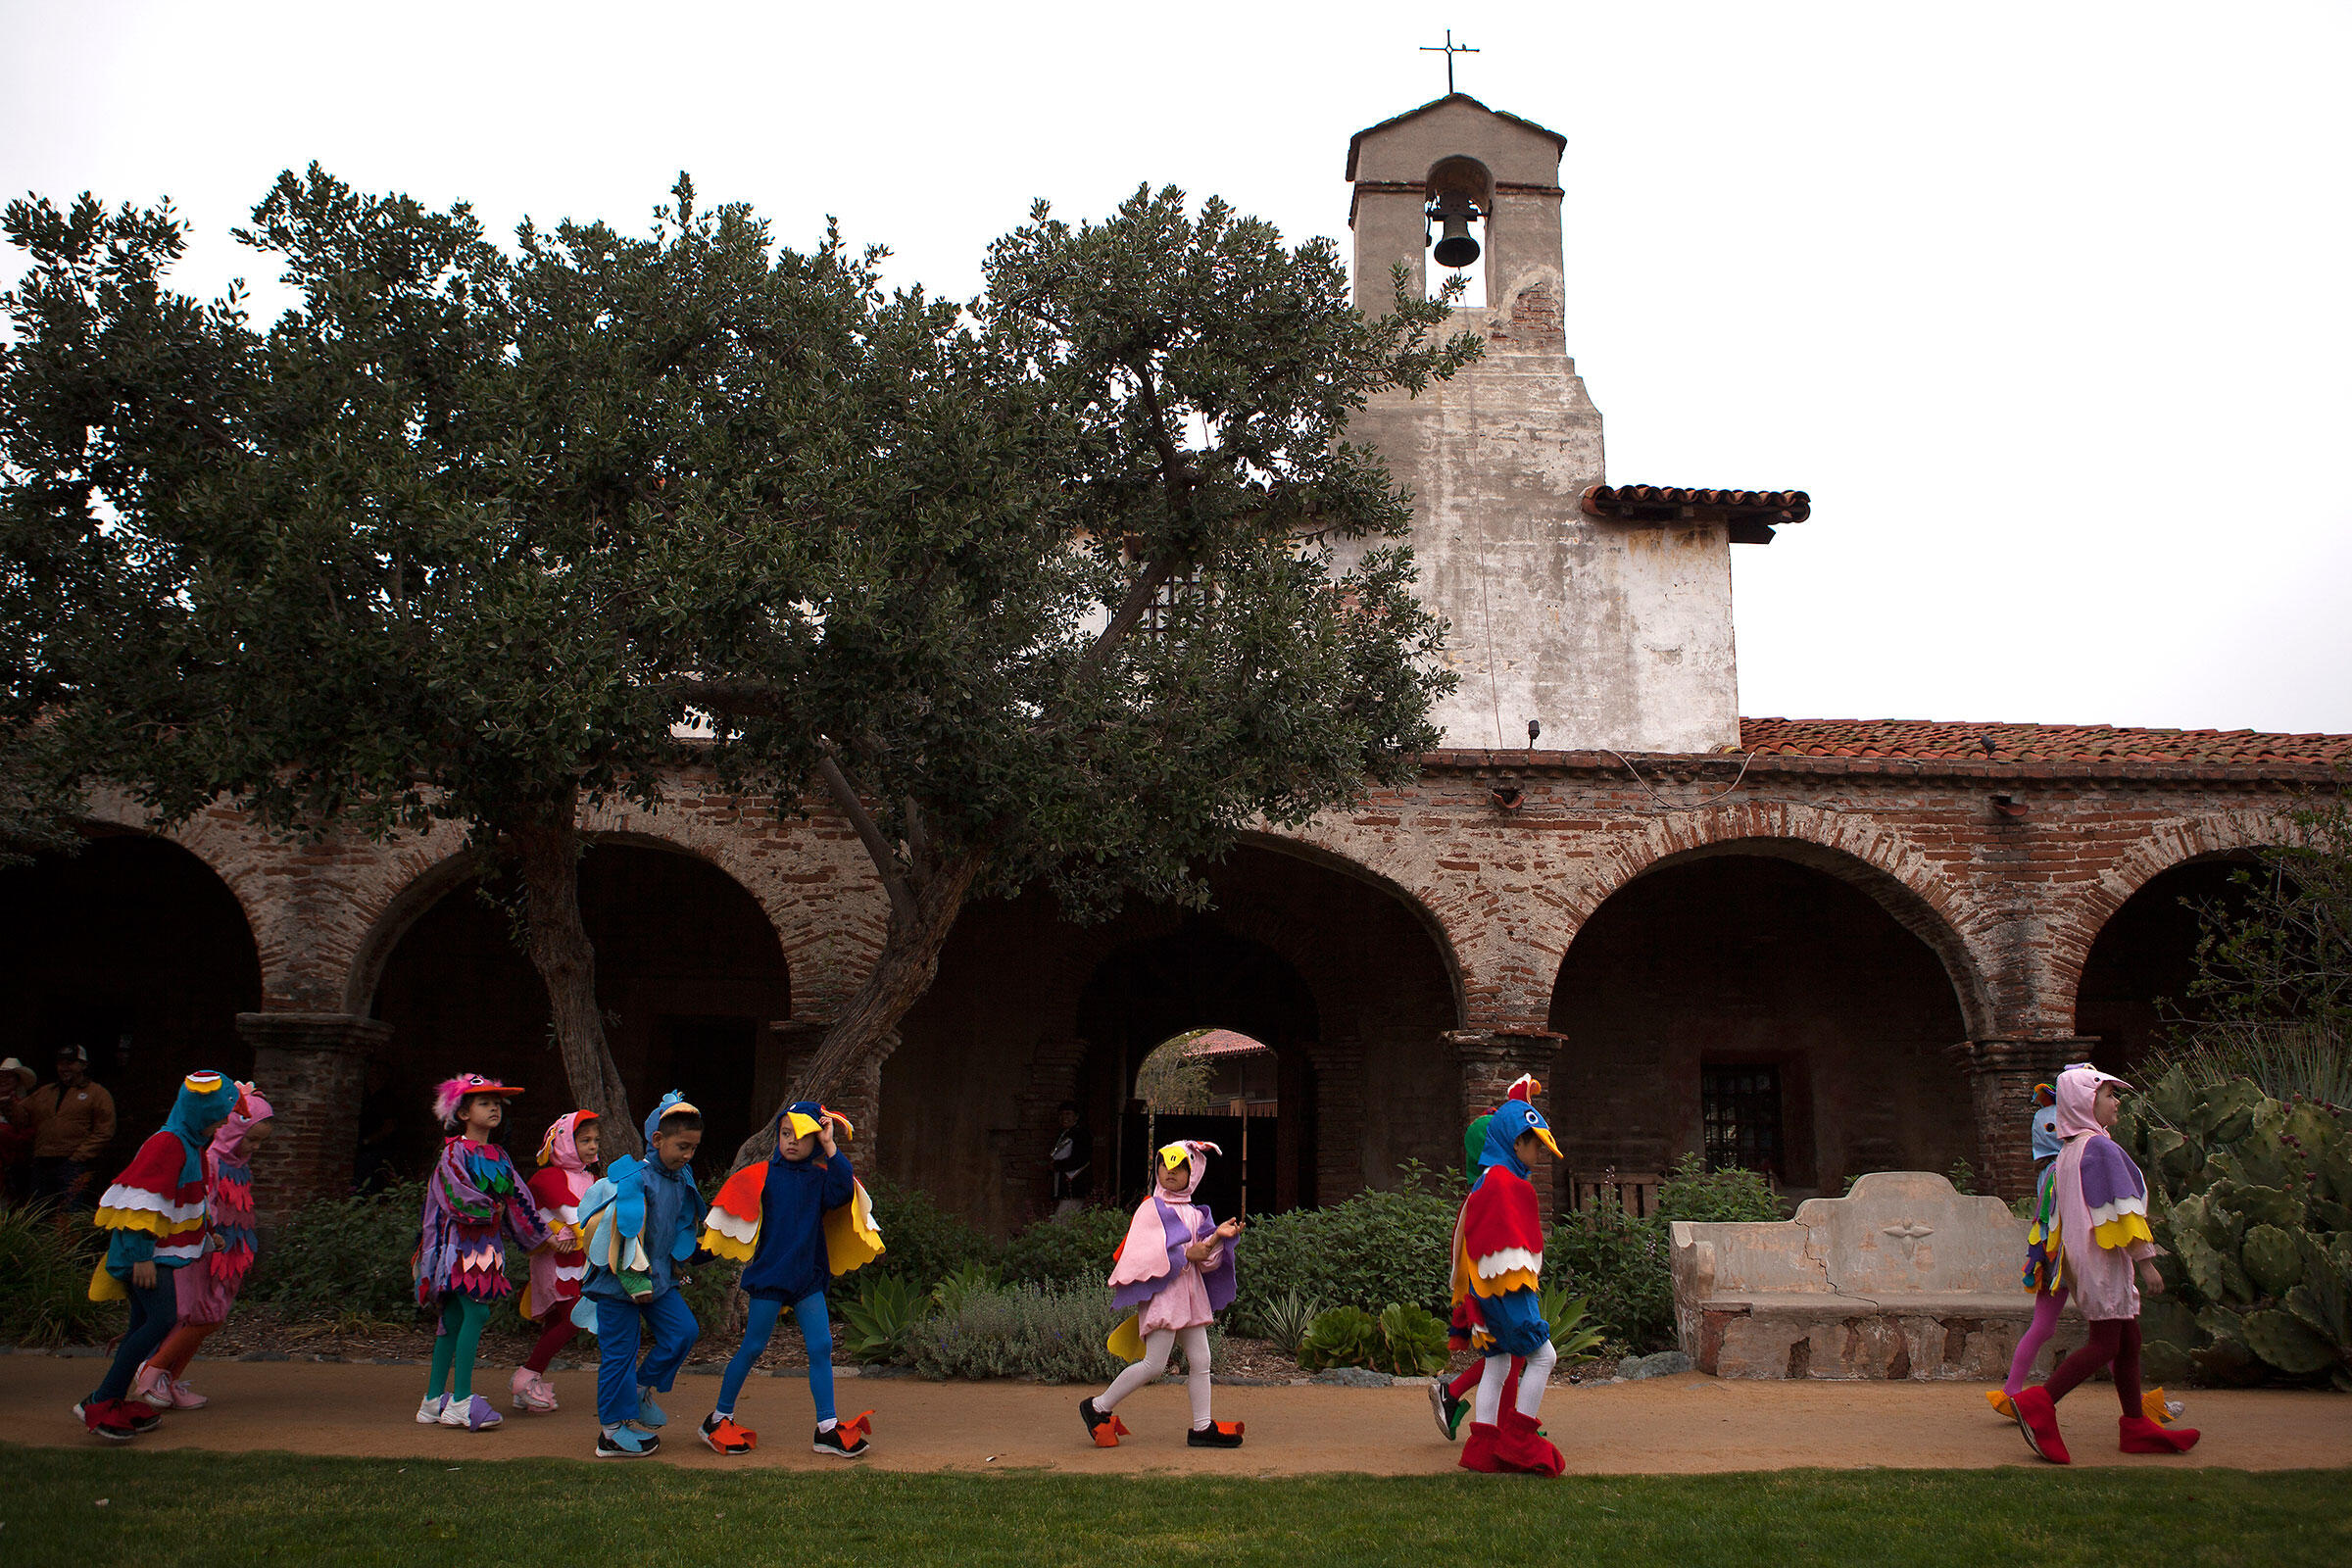 Students from the Mission Basilica School dress in fanciful bird costumes and perform a traditional song and dance during the festival. Troy Harvey